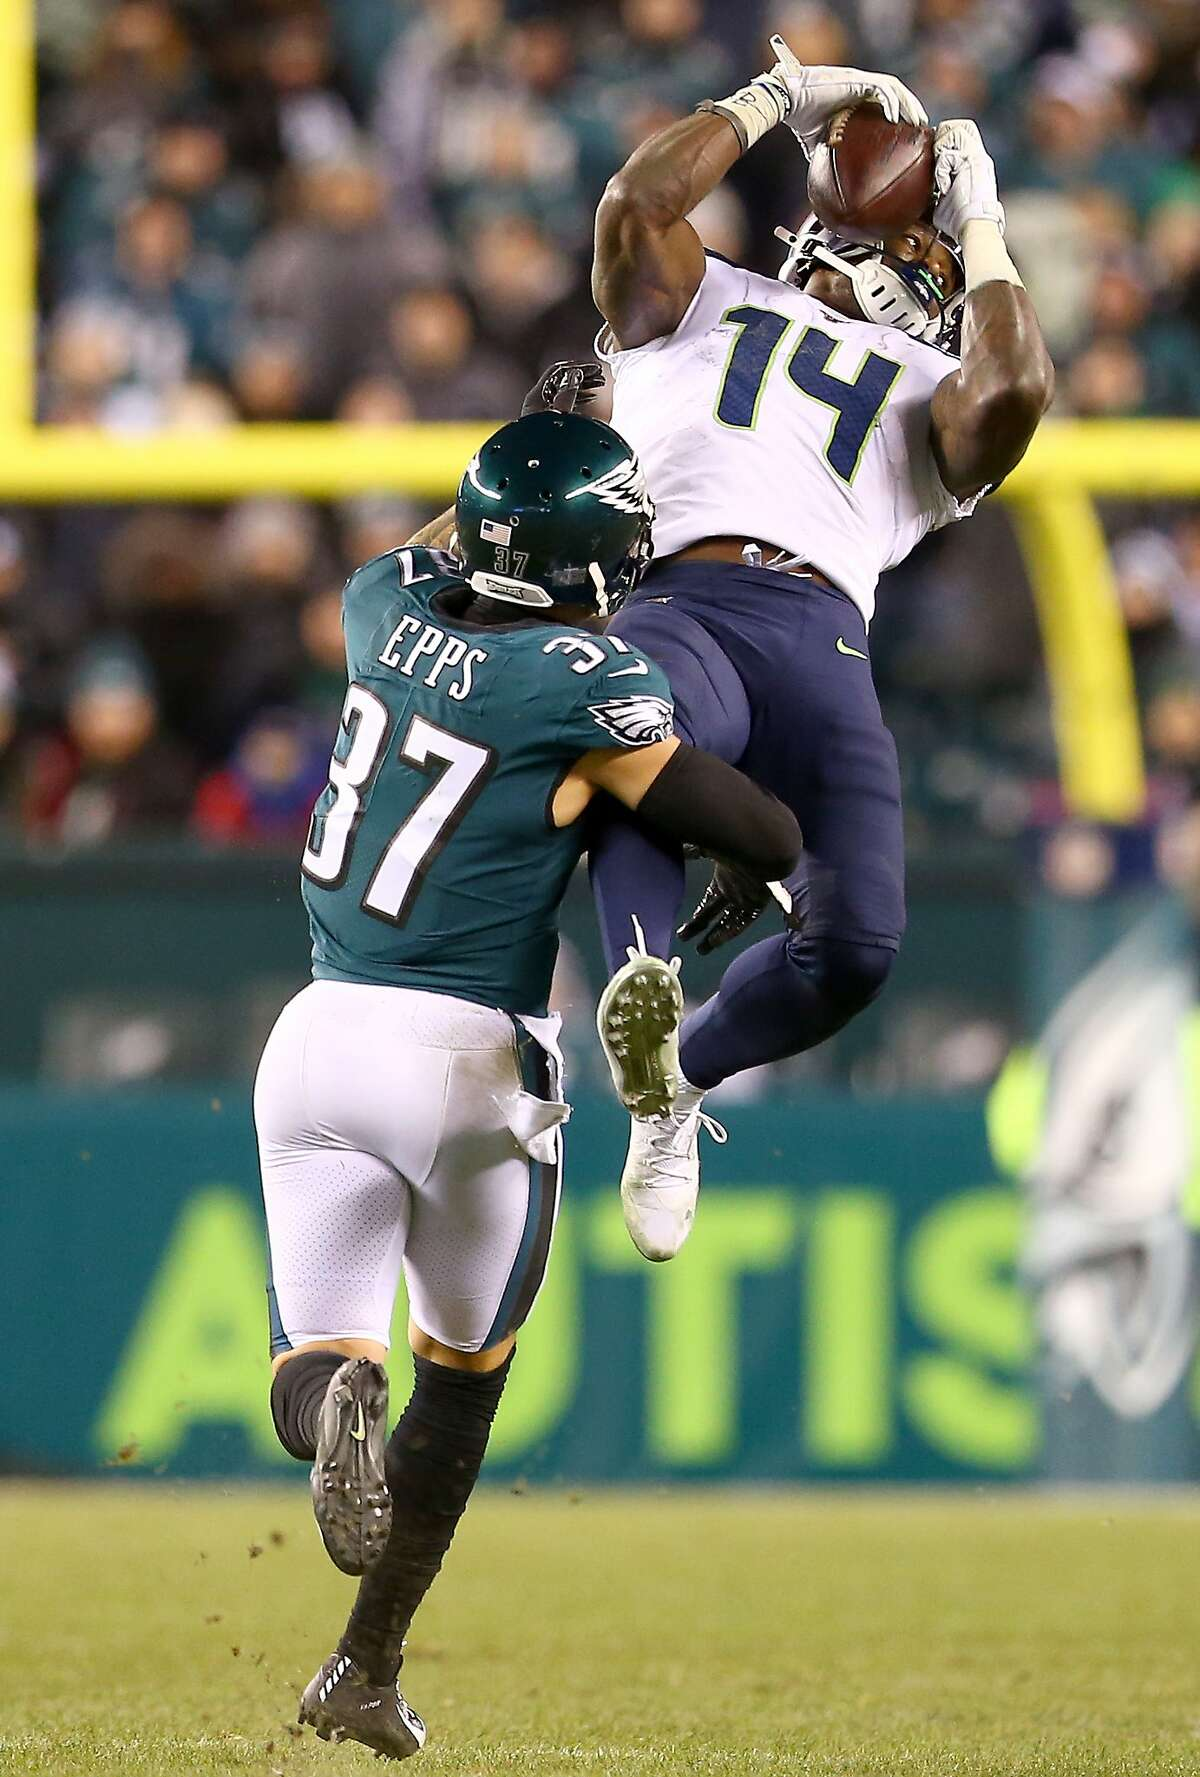 PHILADELPHIA, PENNSYLVANIA - JANUARY 05: D.K. Metcalf #14 of the Seattle Seahawks catches a pass over Marcus Epps #37 of the Philadelphia Eagles in the fourth quarter of the NFC Wild Card Playoff game at Lincoln Financial Field on January 05, 2020 in Philadelphia, Pennsylvania. (Photo by Mitchell Leff/Getty Images)